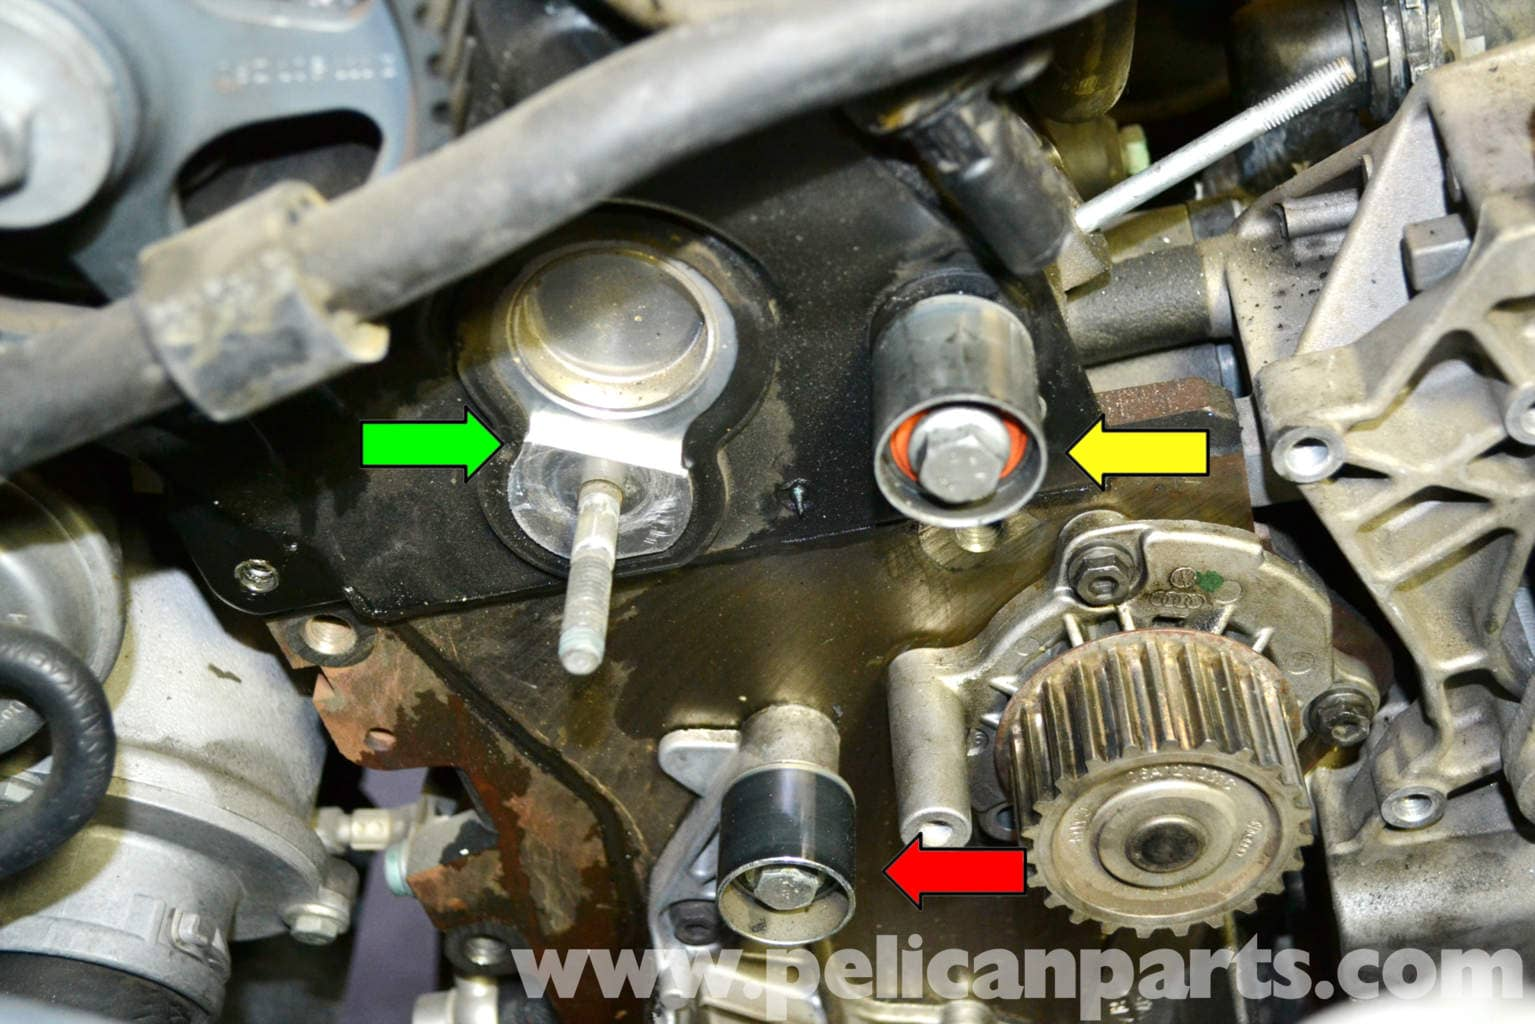 Nissan Altima Timing Marks On 2006 Nissan Altima Motor Mount Diagram